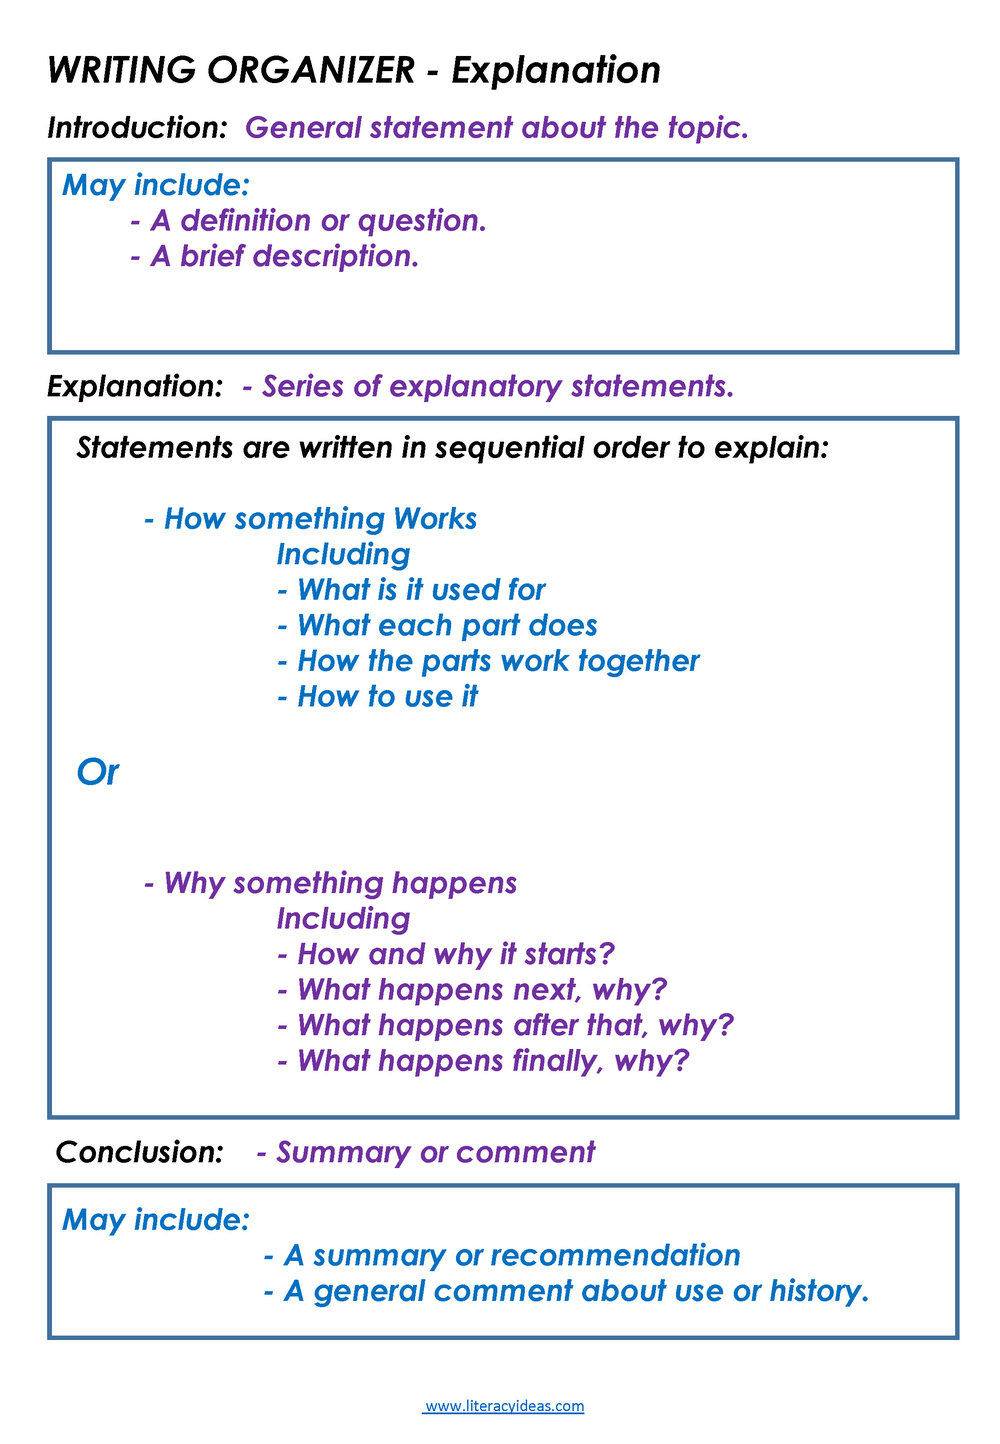 How To Write An Excellent Explanation Text Literacy Ideas